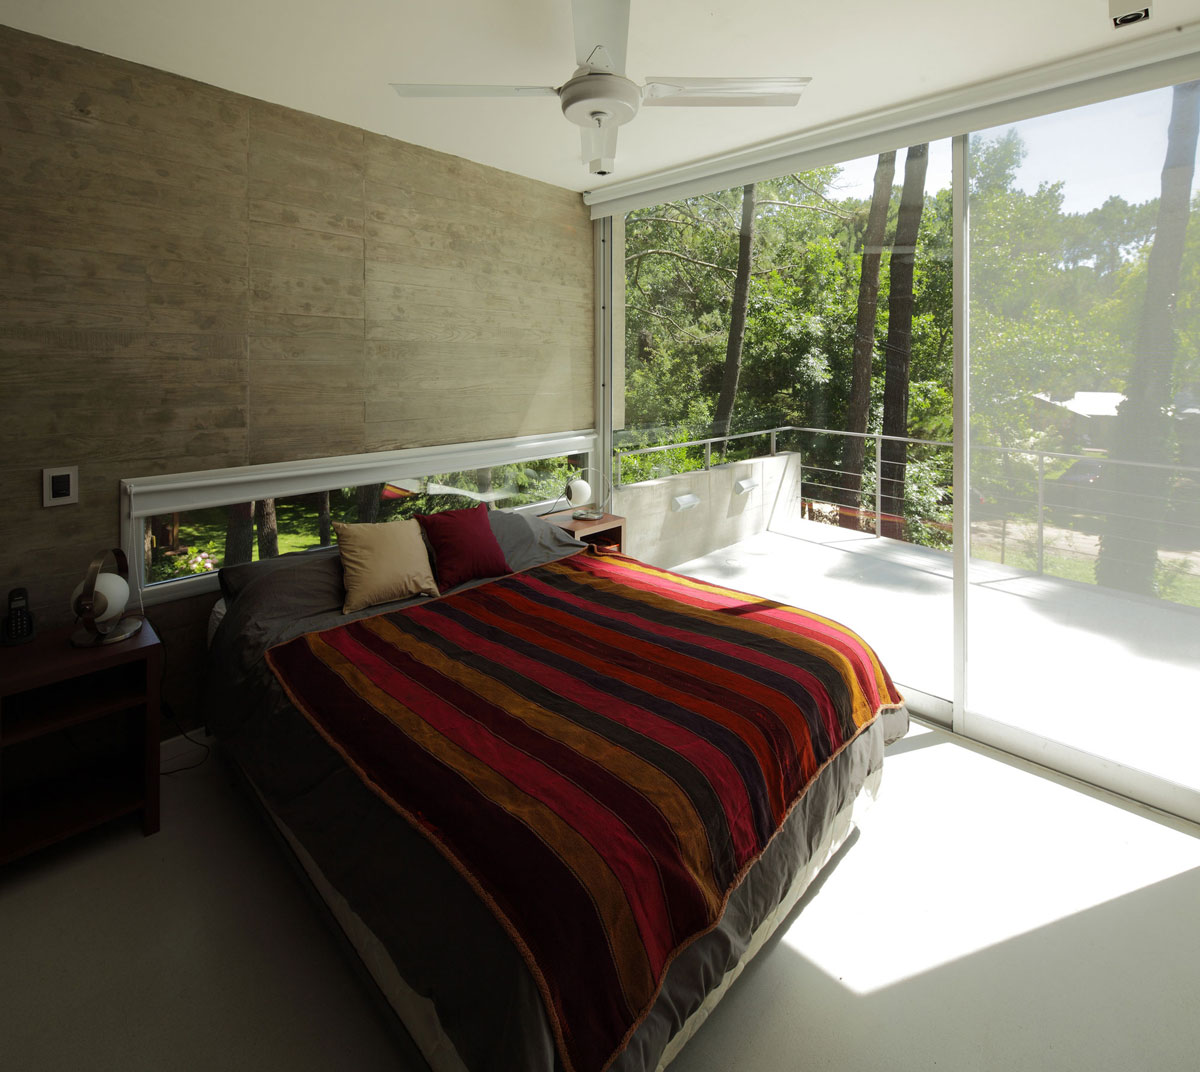 Bedroom, Balcony, Modern Concrete House in Cariló, Argentina